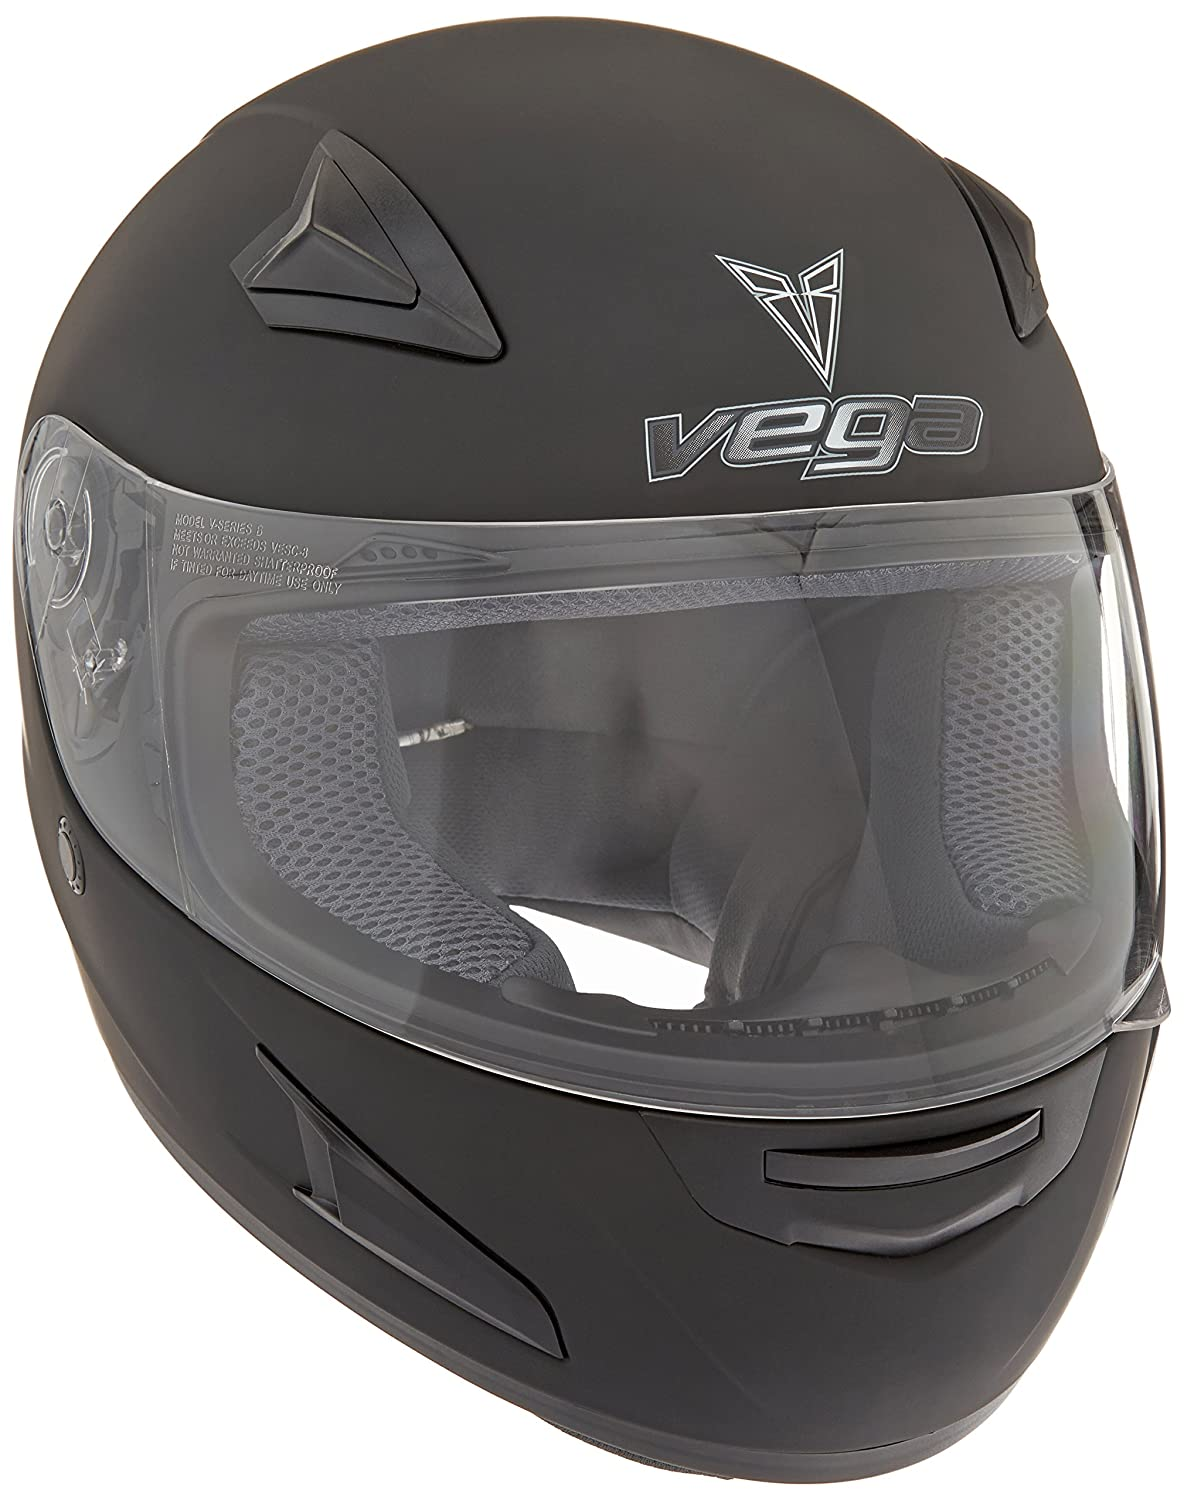 Vega X888 Full Face Helmet Flat Black